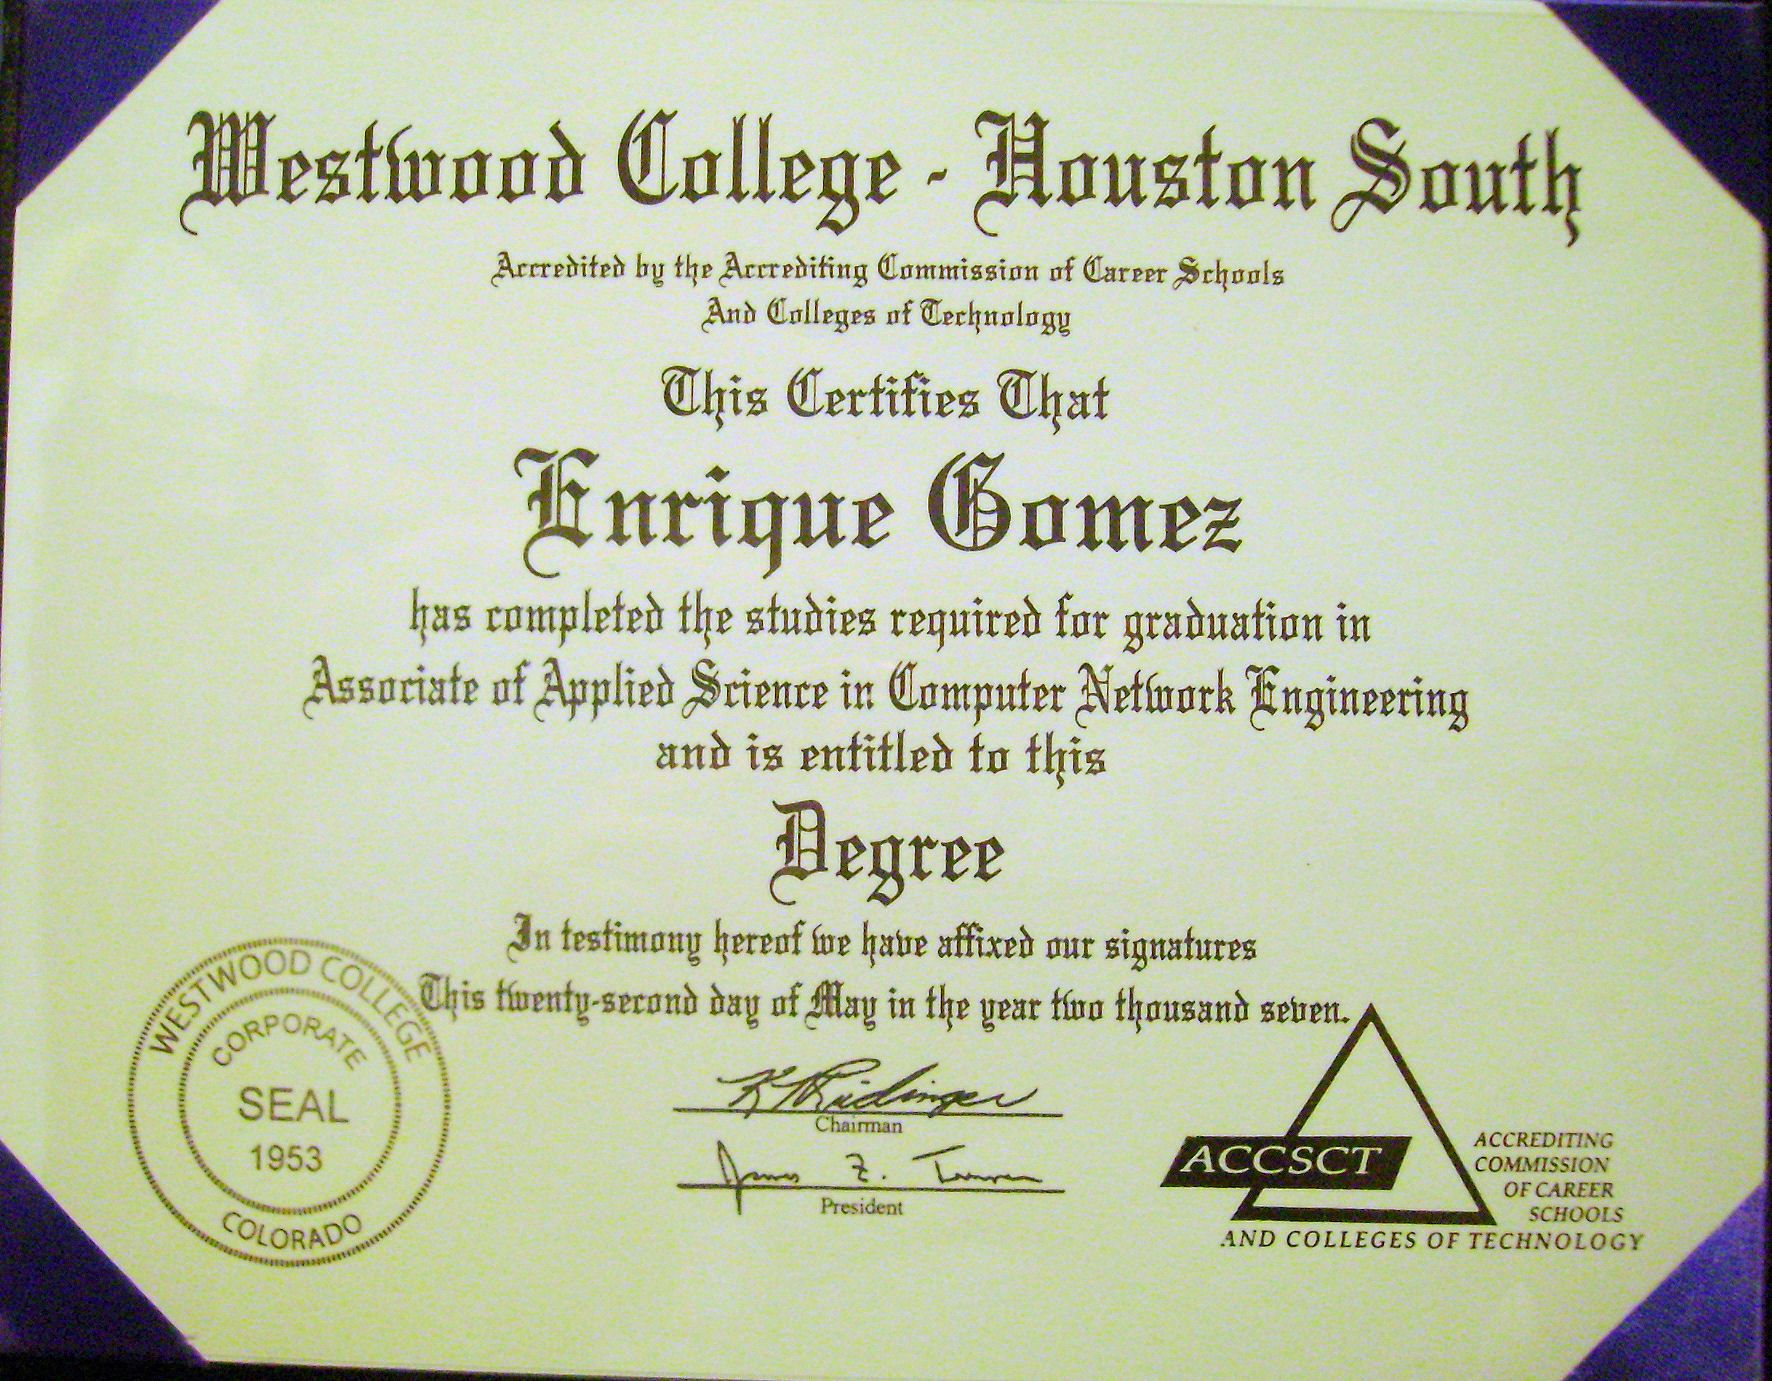 My associate degree in Computer